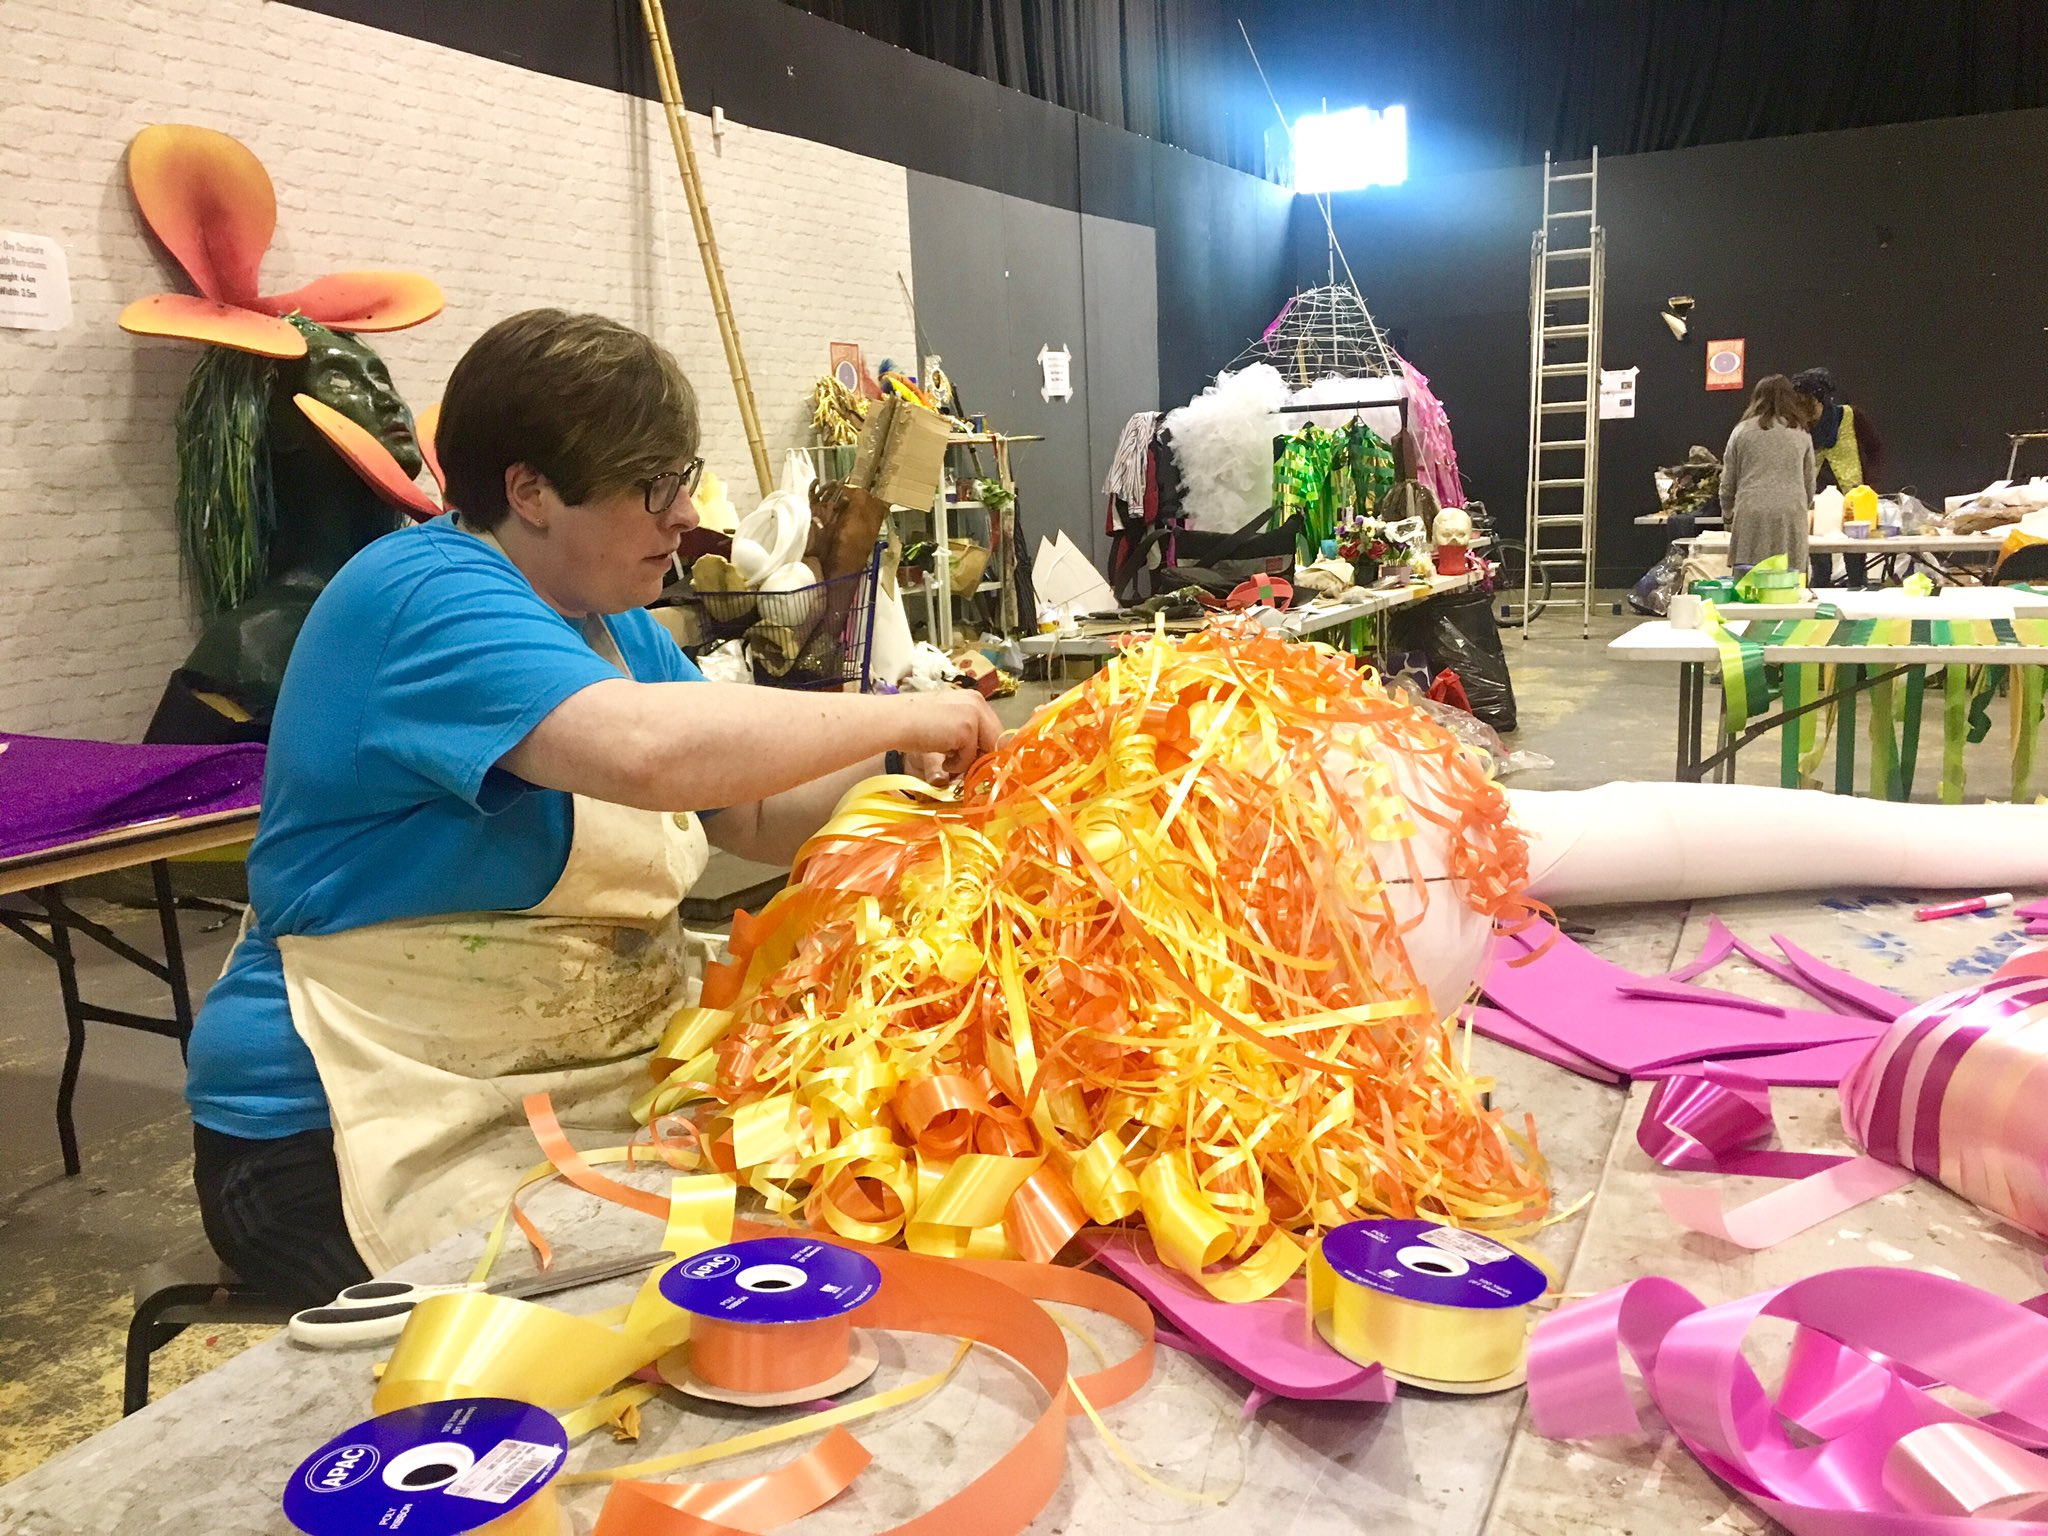 Can you guess what Emma our #McrDay17 volunteer is making? Get involved in the magic here https://t.co/Rz4A4V85pC https://t.co/utXIV7hVyz